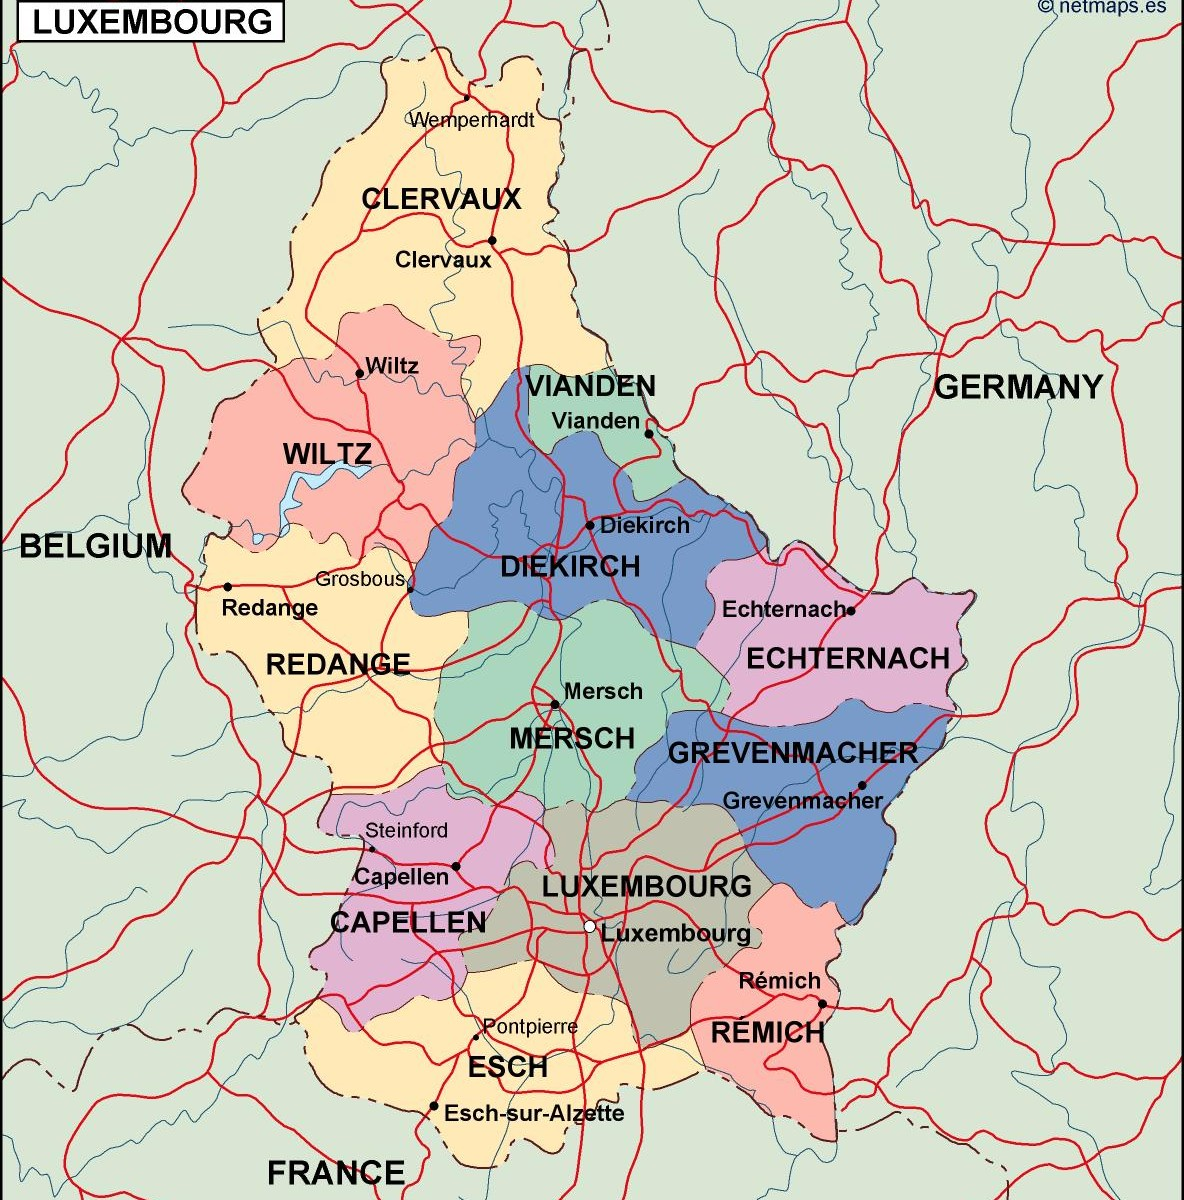 luxembourg political map Illustrator Vector Eps maps Eps